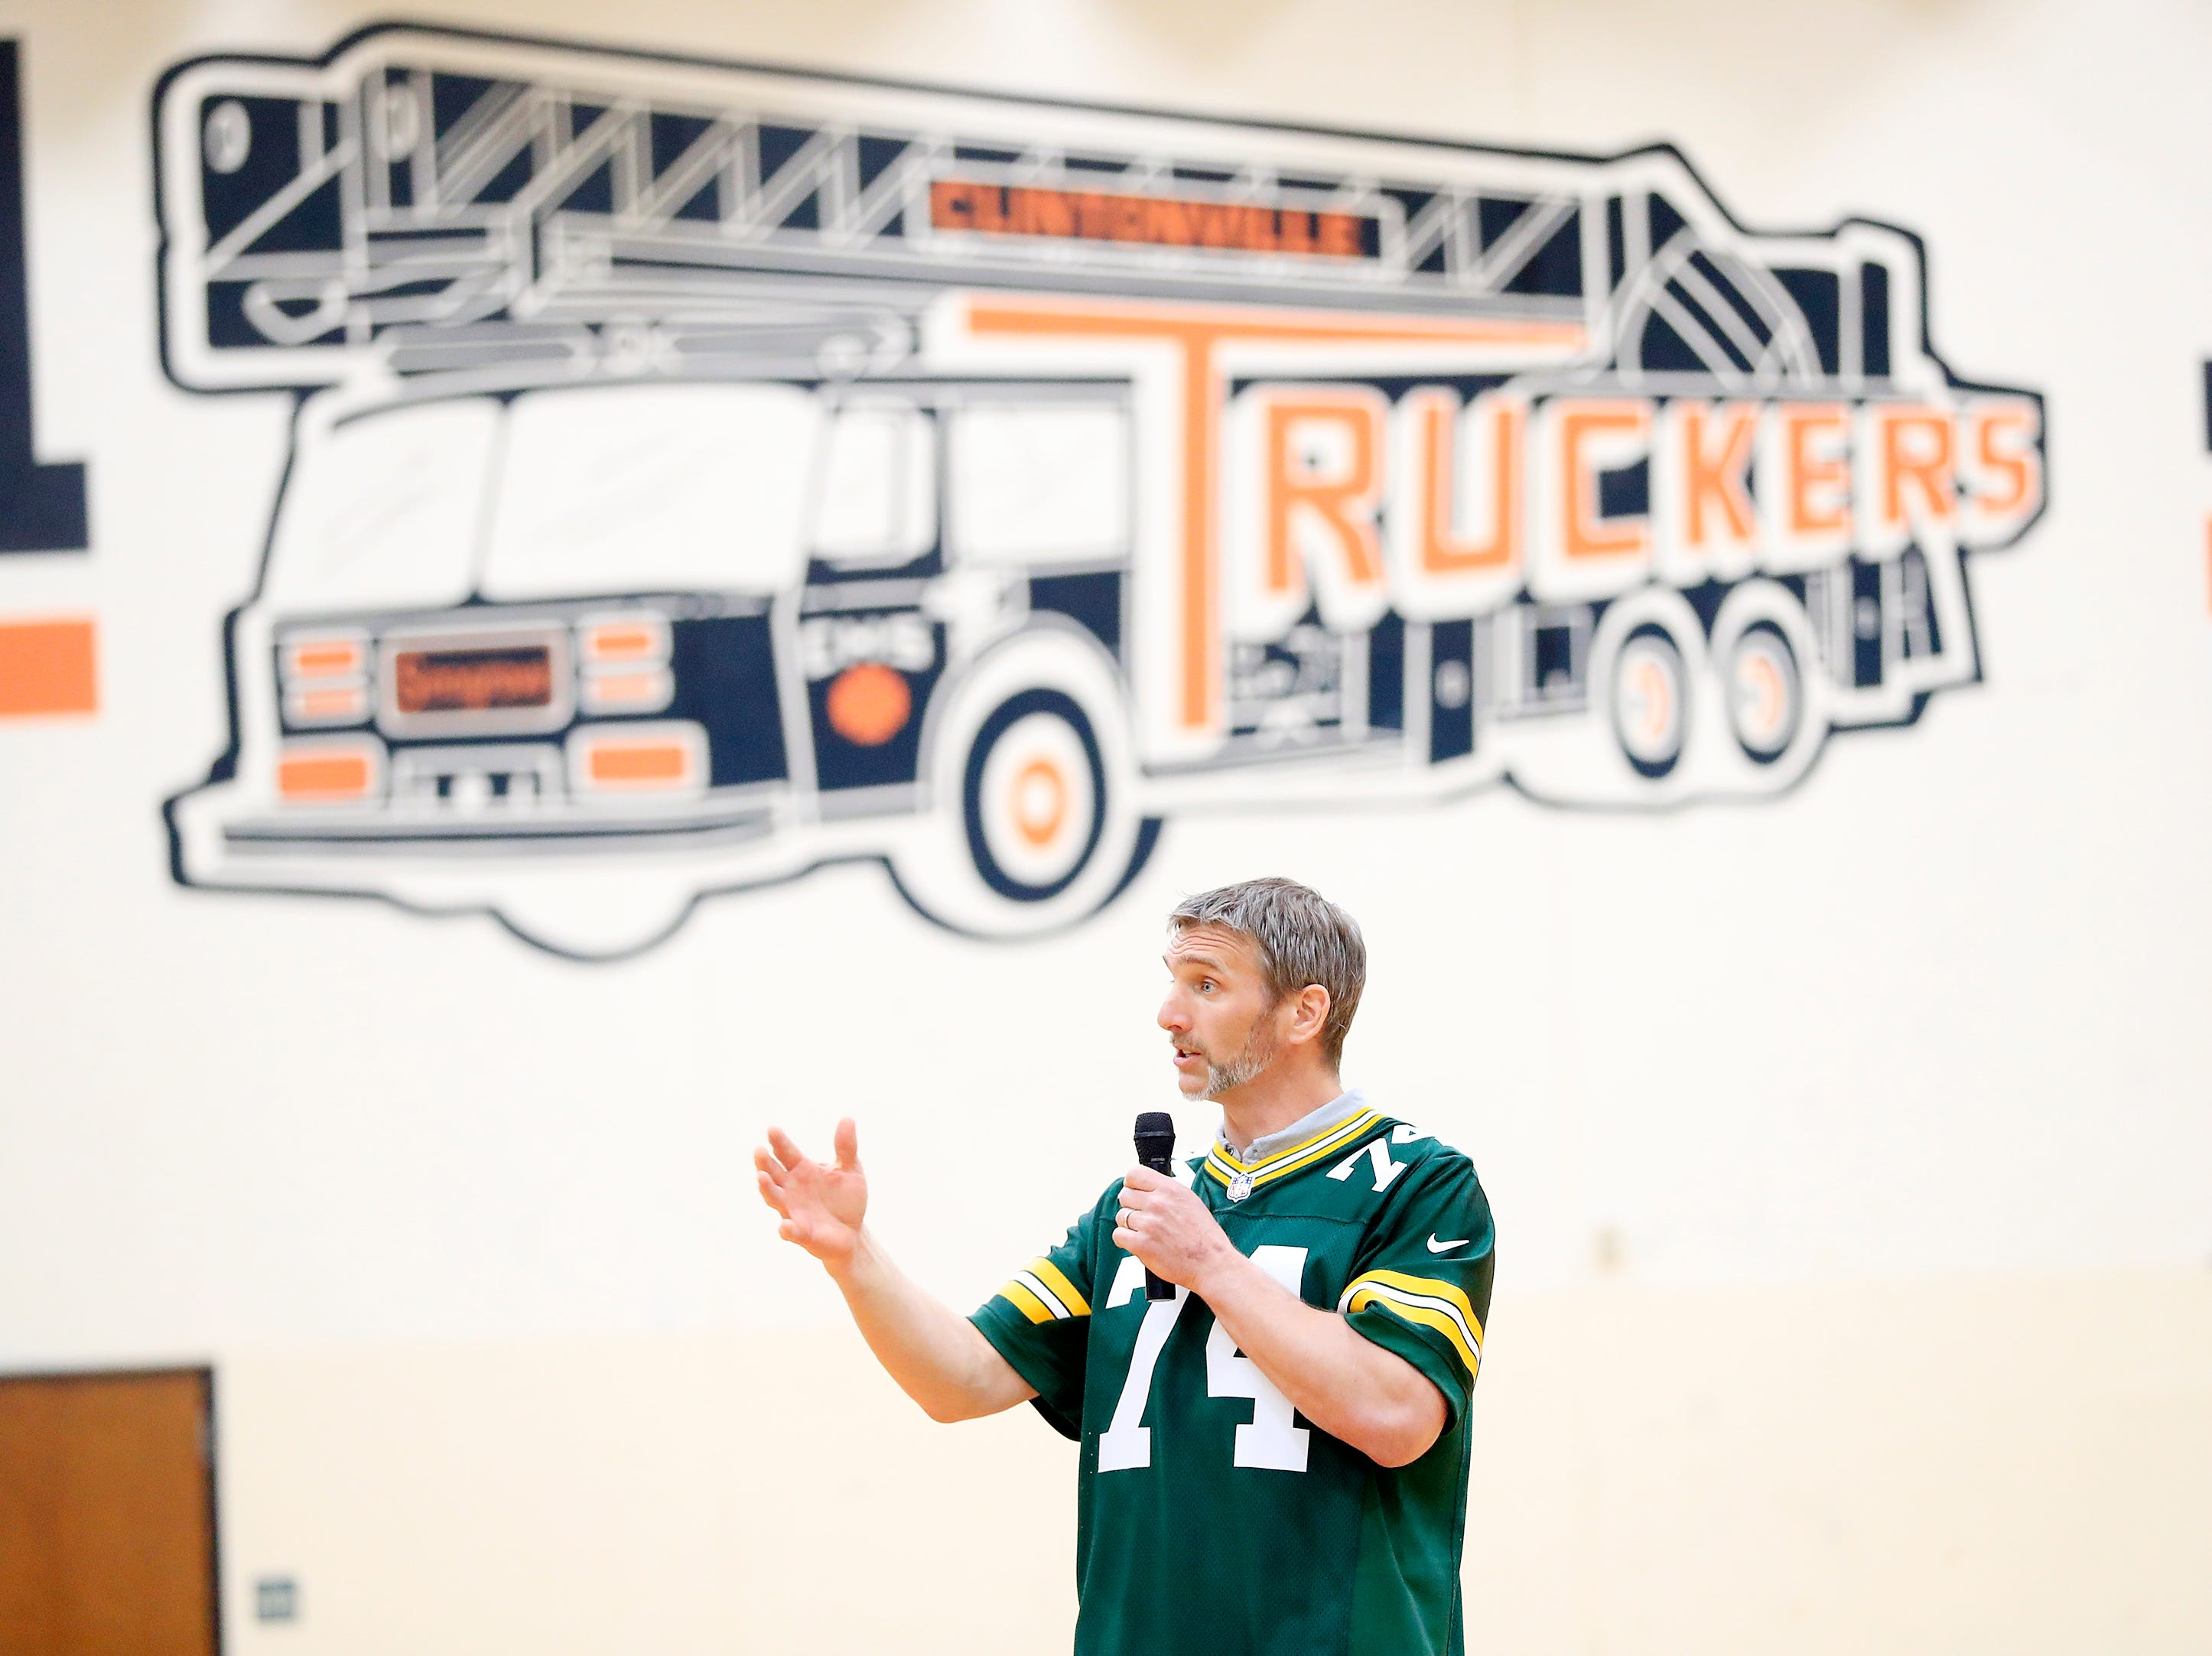 Former Green Bay Packers player Aaron Kampman talks during a stop on the Packers Tailgate Tour at Clintonville High School on Tuesday, April 9, 2019 in Clintonville, Wis.